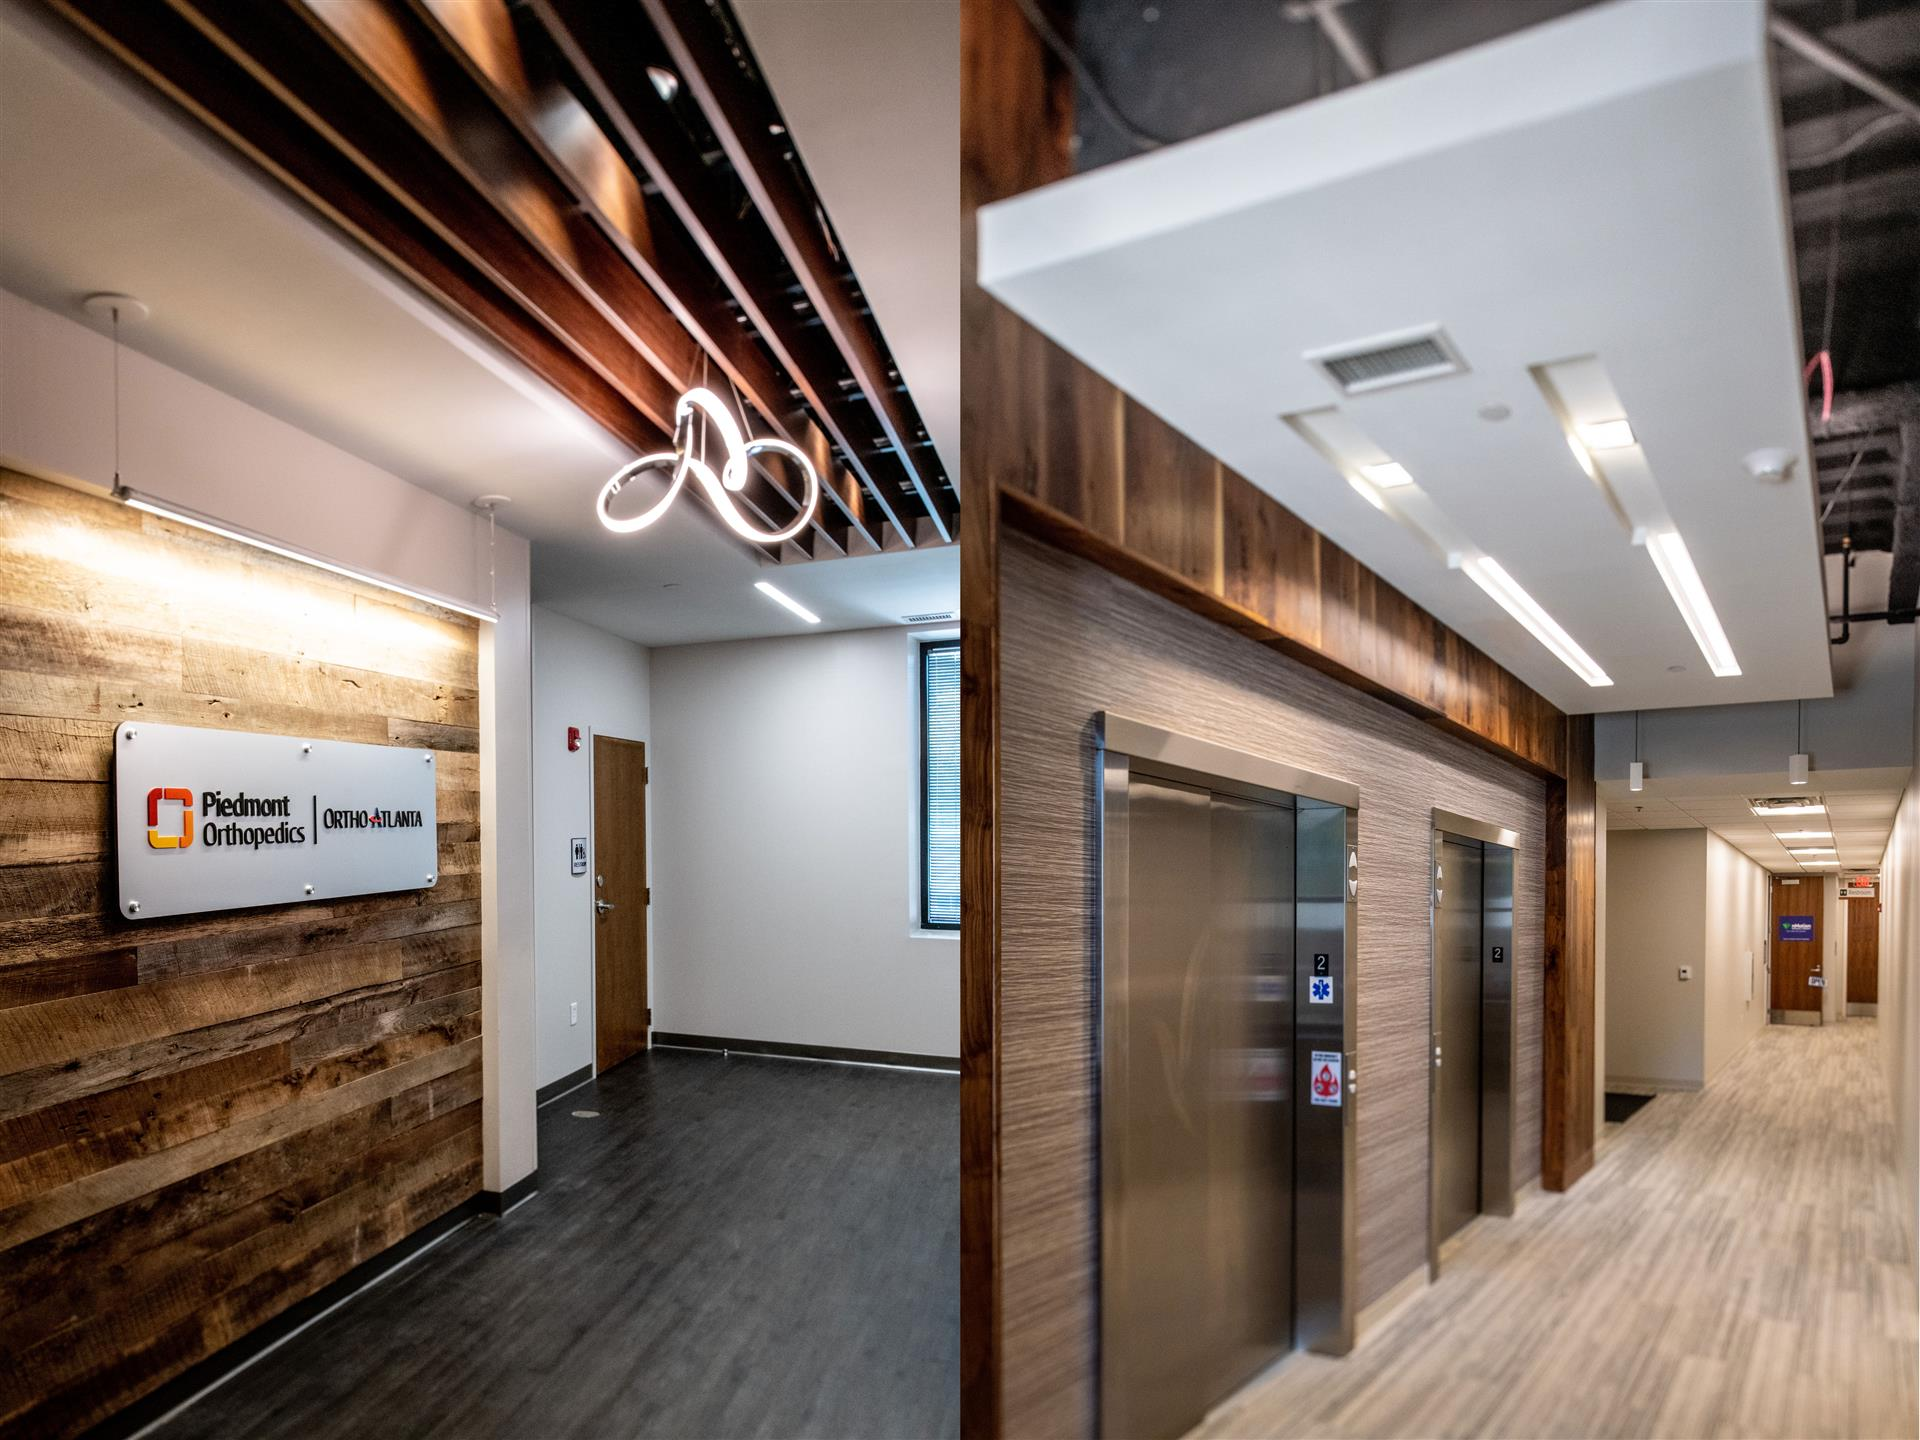 Interior shot as split screen; left side shows Piedmont Orthopeadics sign and door to their suite and right side shows the elevators and down a hallway